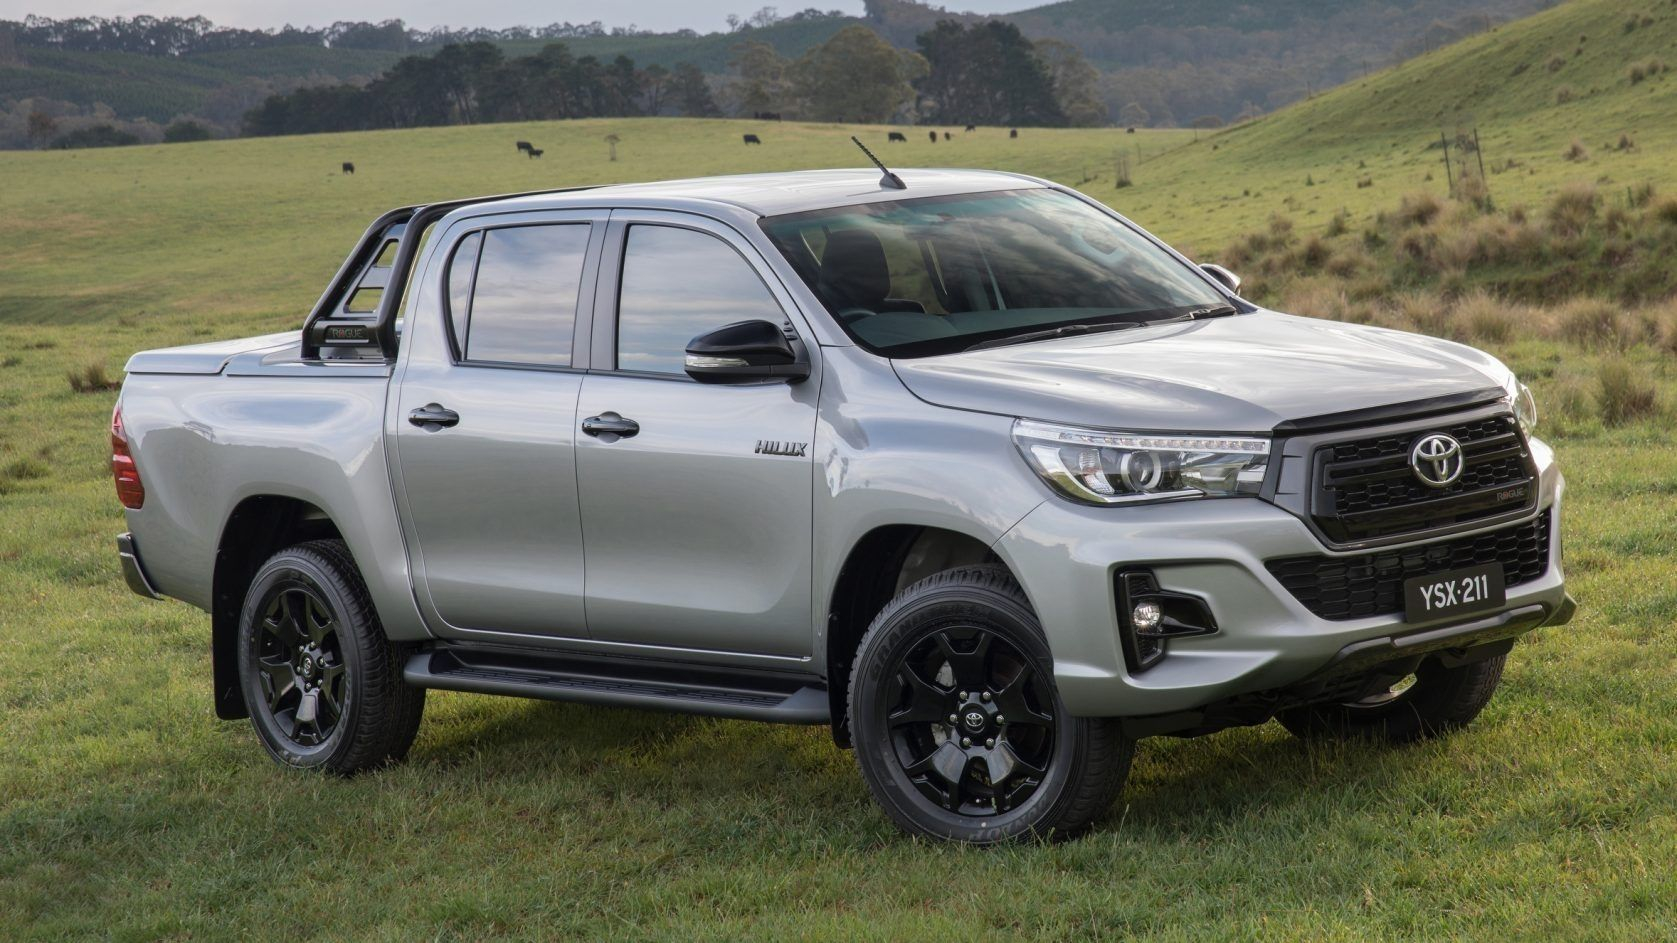 69 New The Toyota Legend 50 2019 New Interior Specs And Review